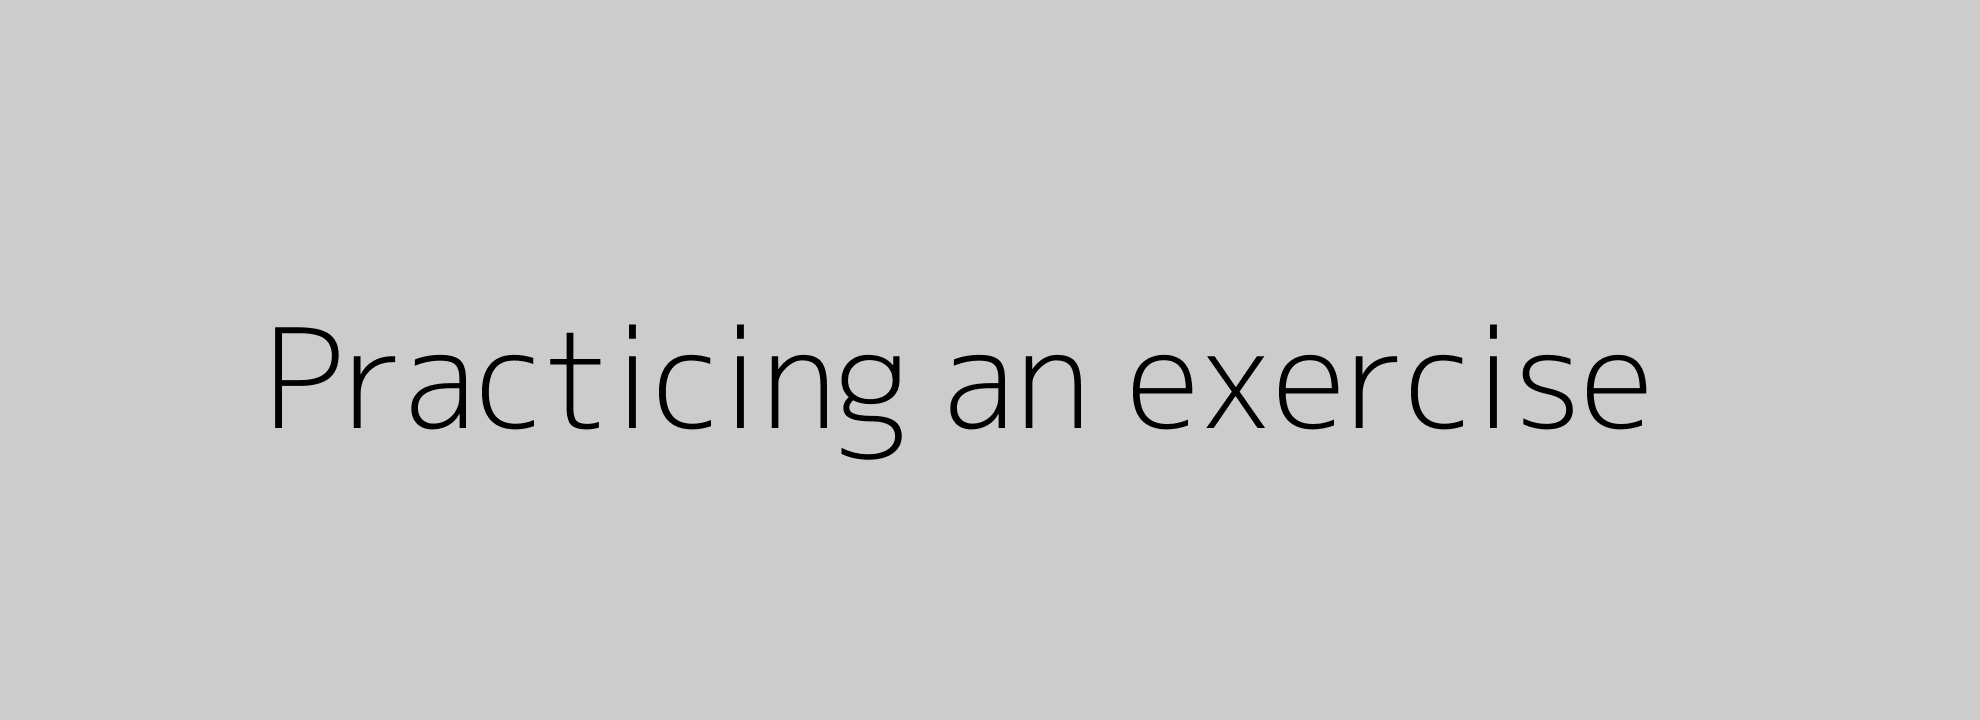 Practicing an exercise